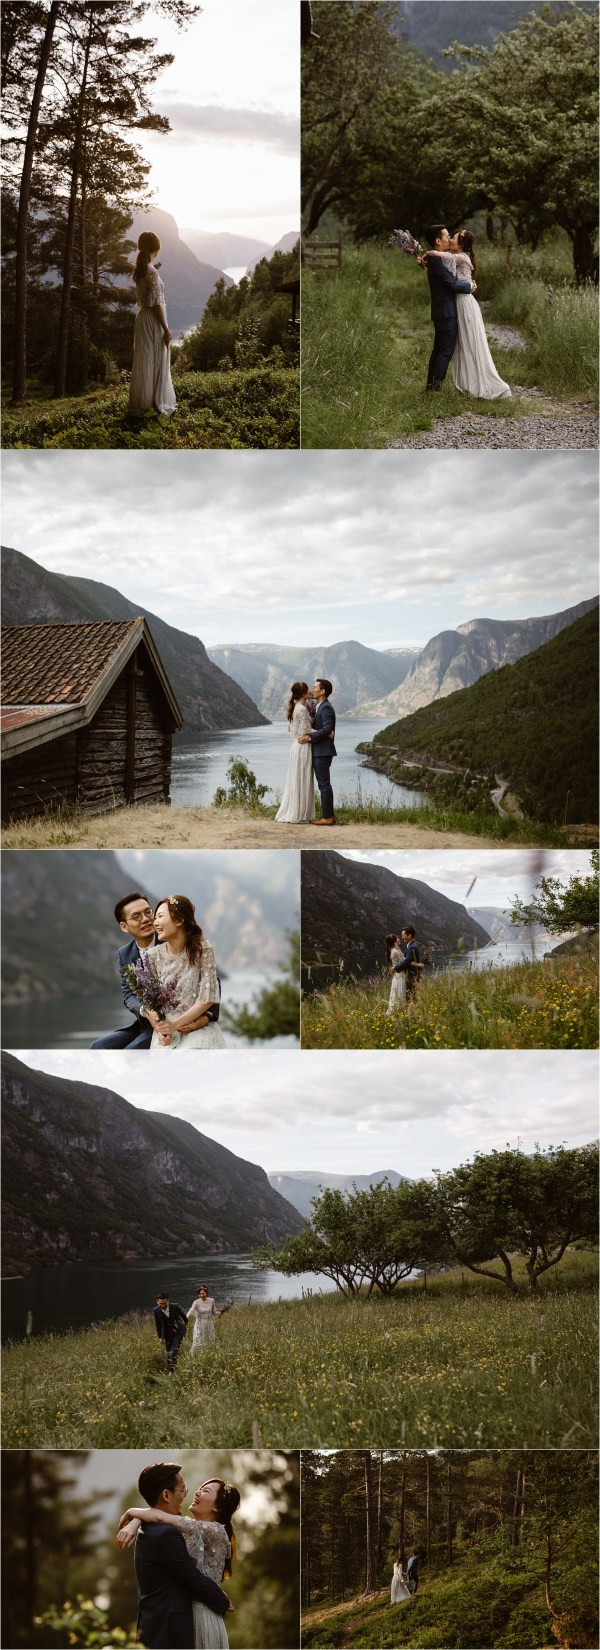 A honeymoon shoot in Sognefjorden Norway by Ingvild Kolnes